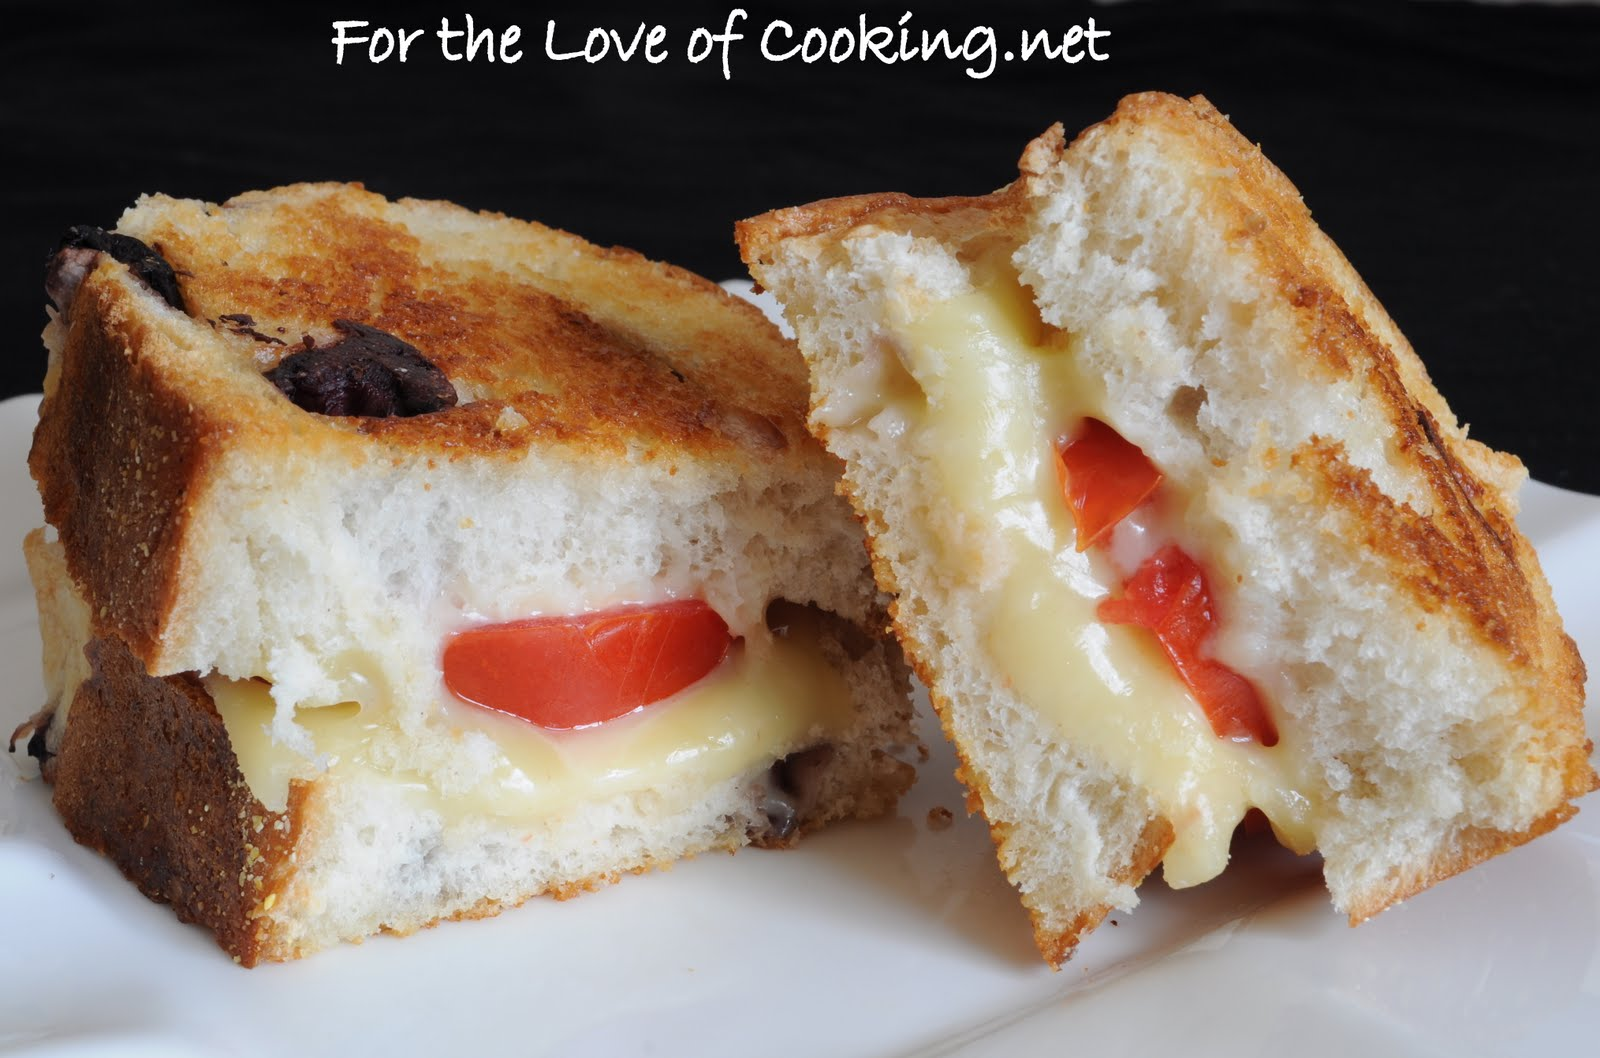 ... Havarti and Tomato on Kalamata Olive Bread | For the Love of Cooking